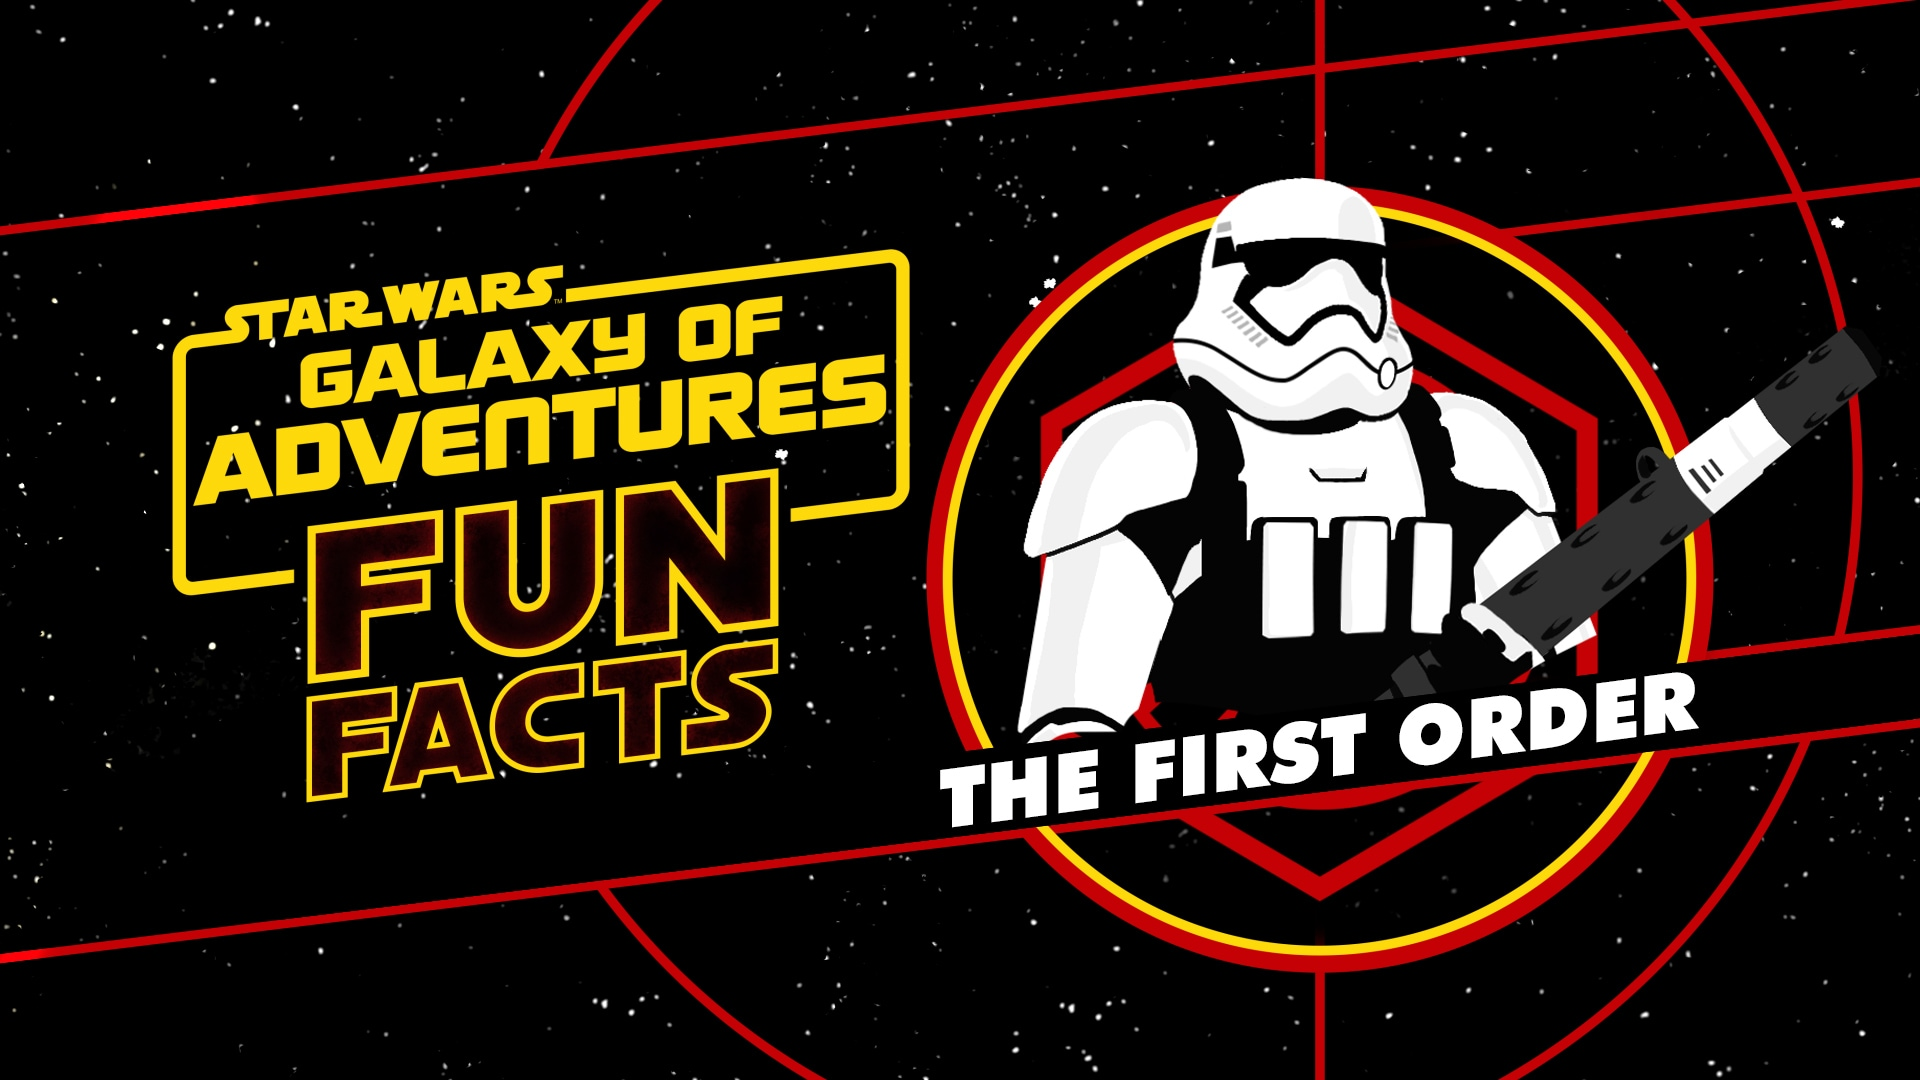 The First Order | Star Wars Galaxy of Adventures Fun Facts